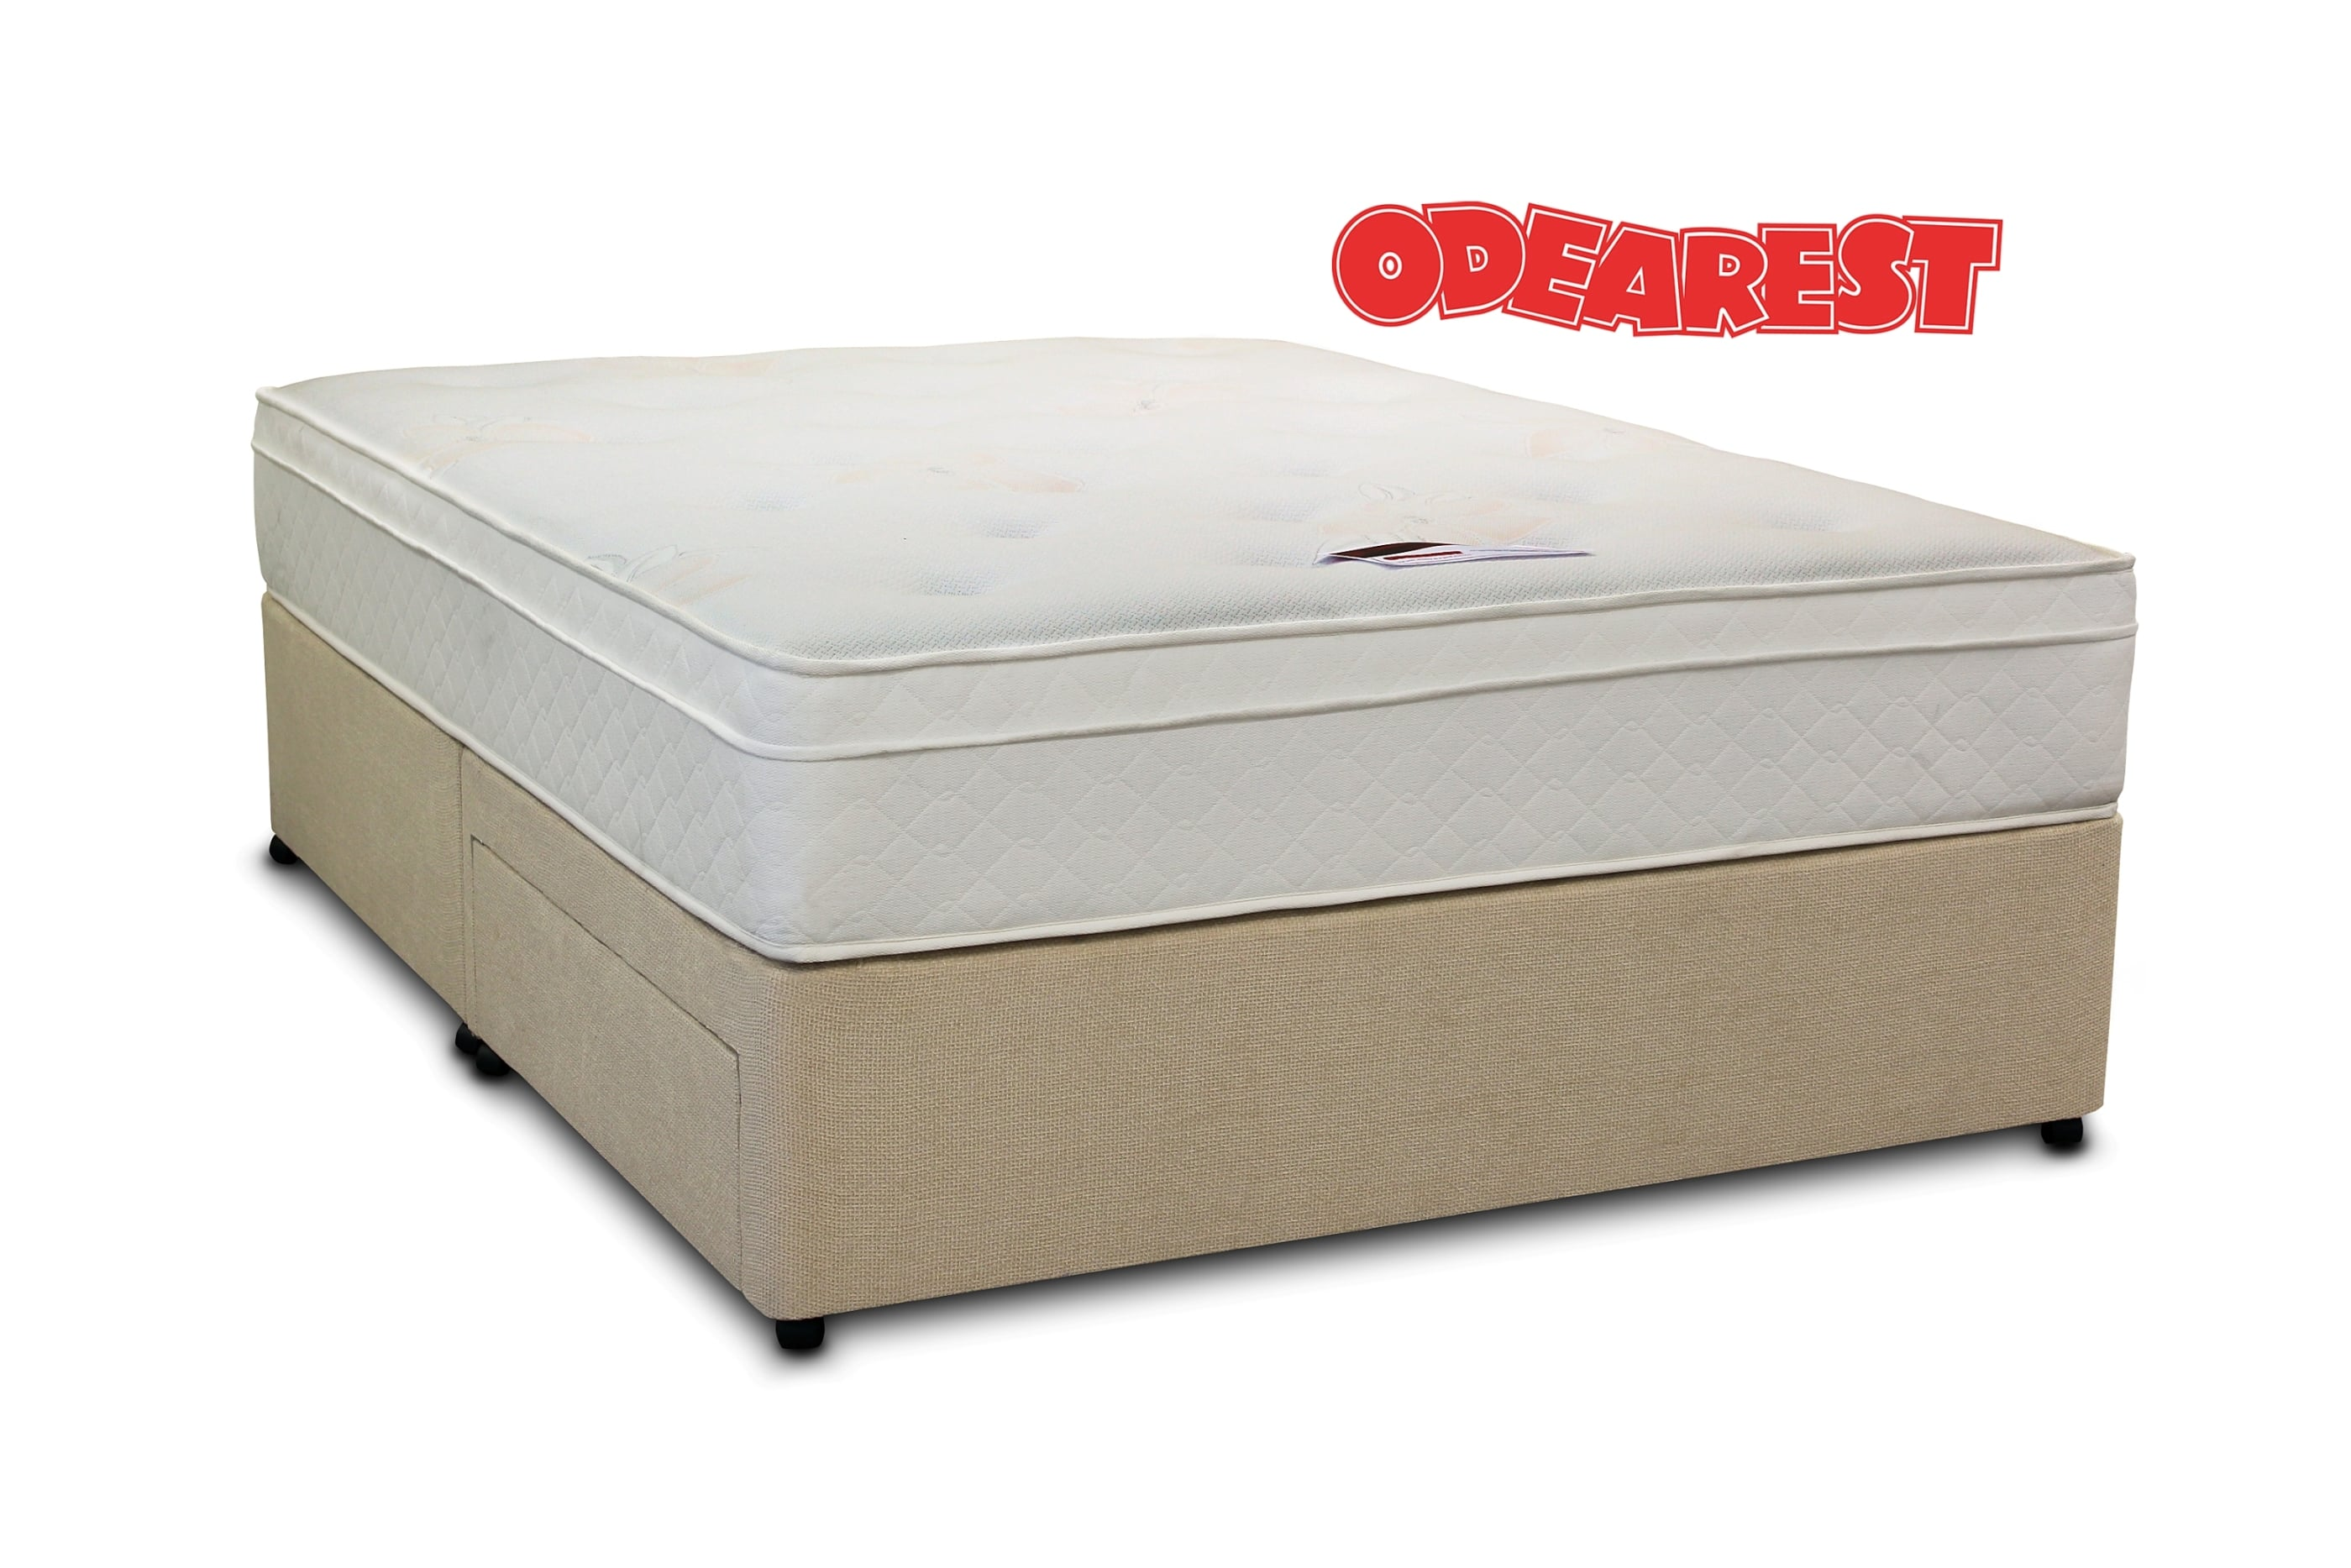 Odearest 6' Orchid Pocket Divan Bed